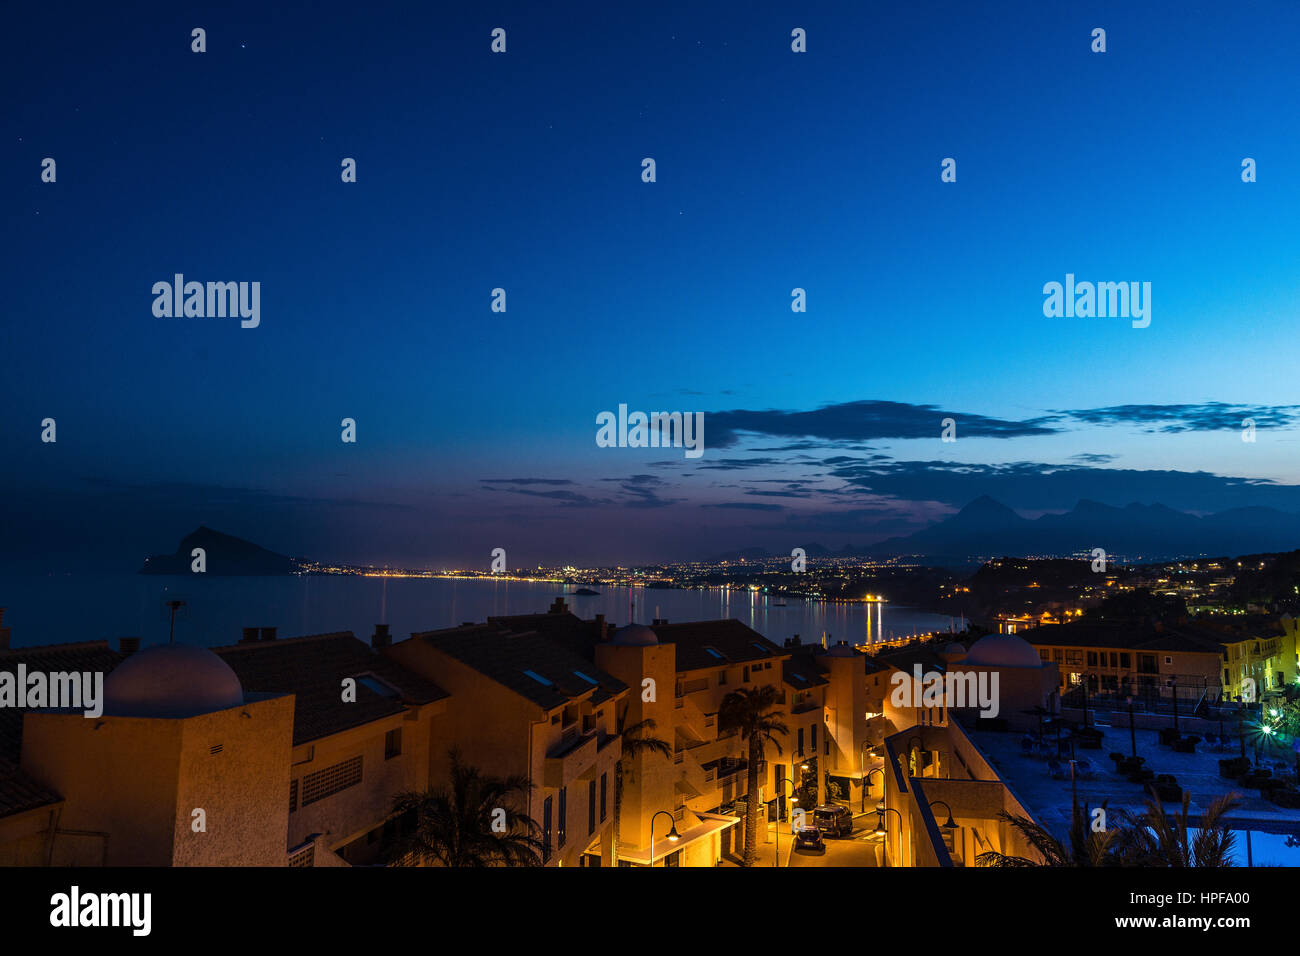 Dusk from the urbanization with Benidorm in the background - Stock Image